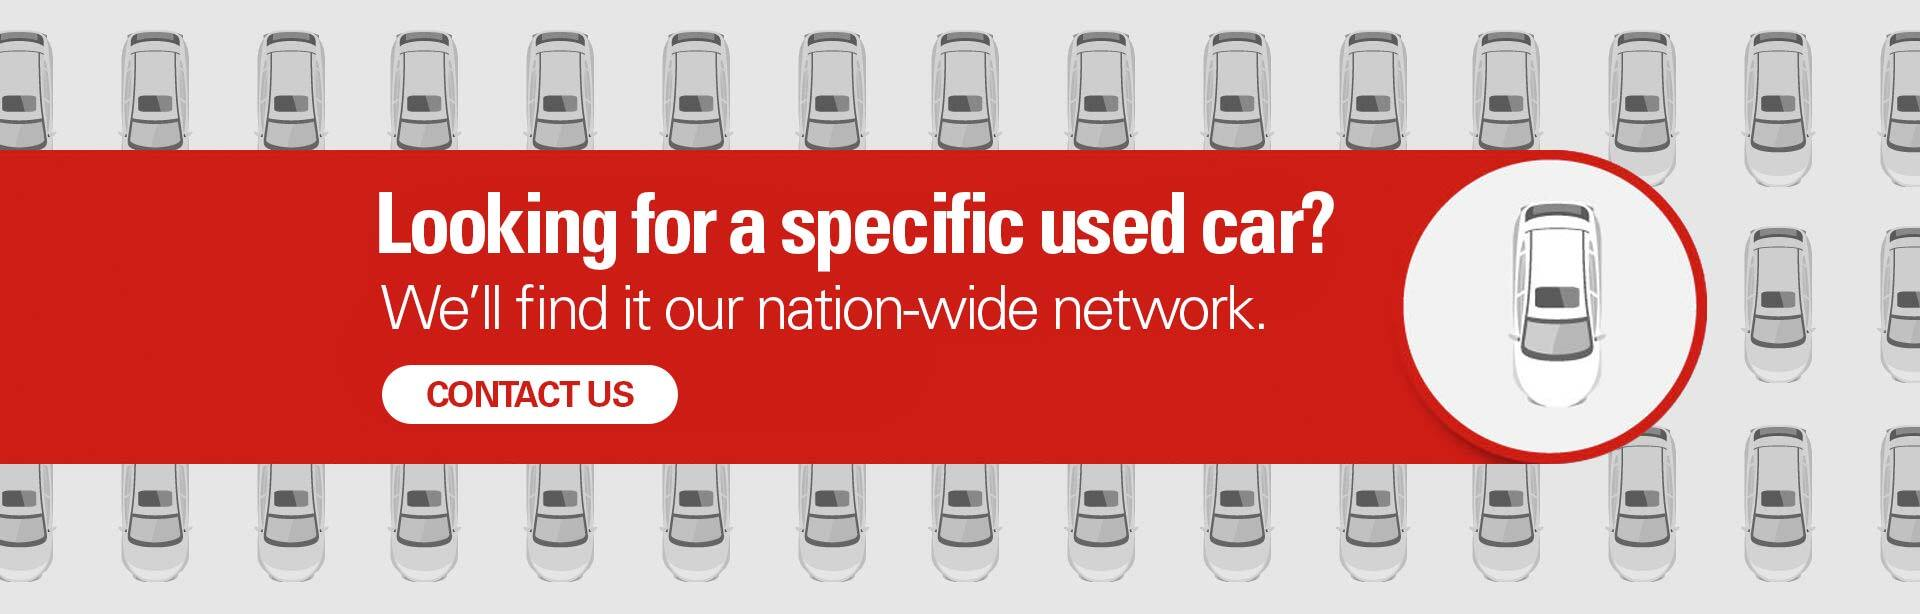 Looking for a specific used car? We'll find it our nation-wide network.